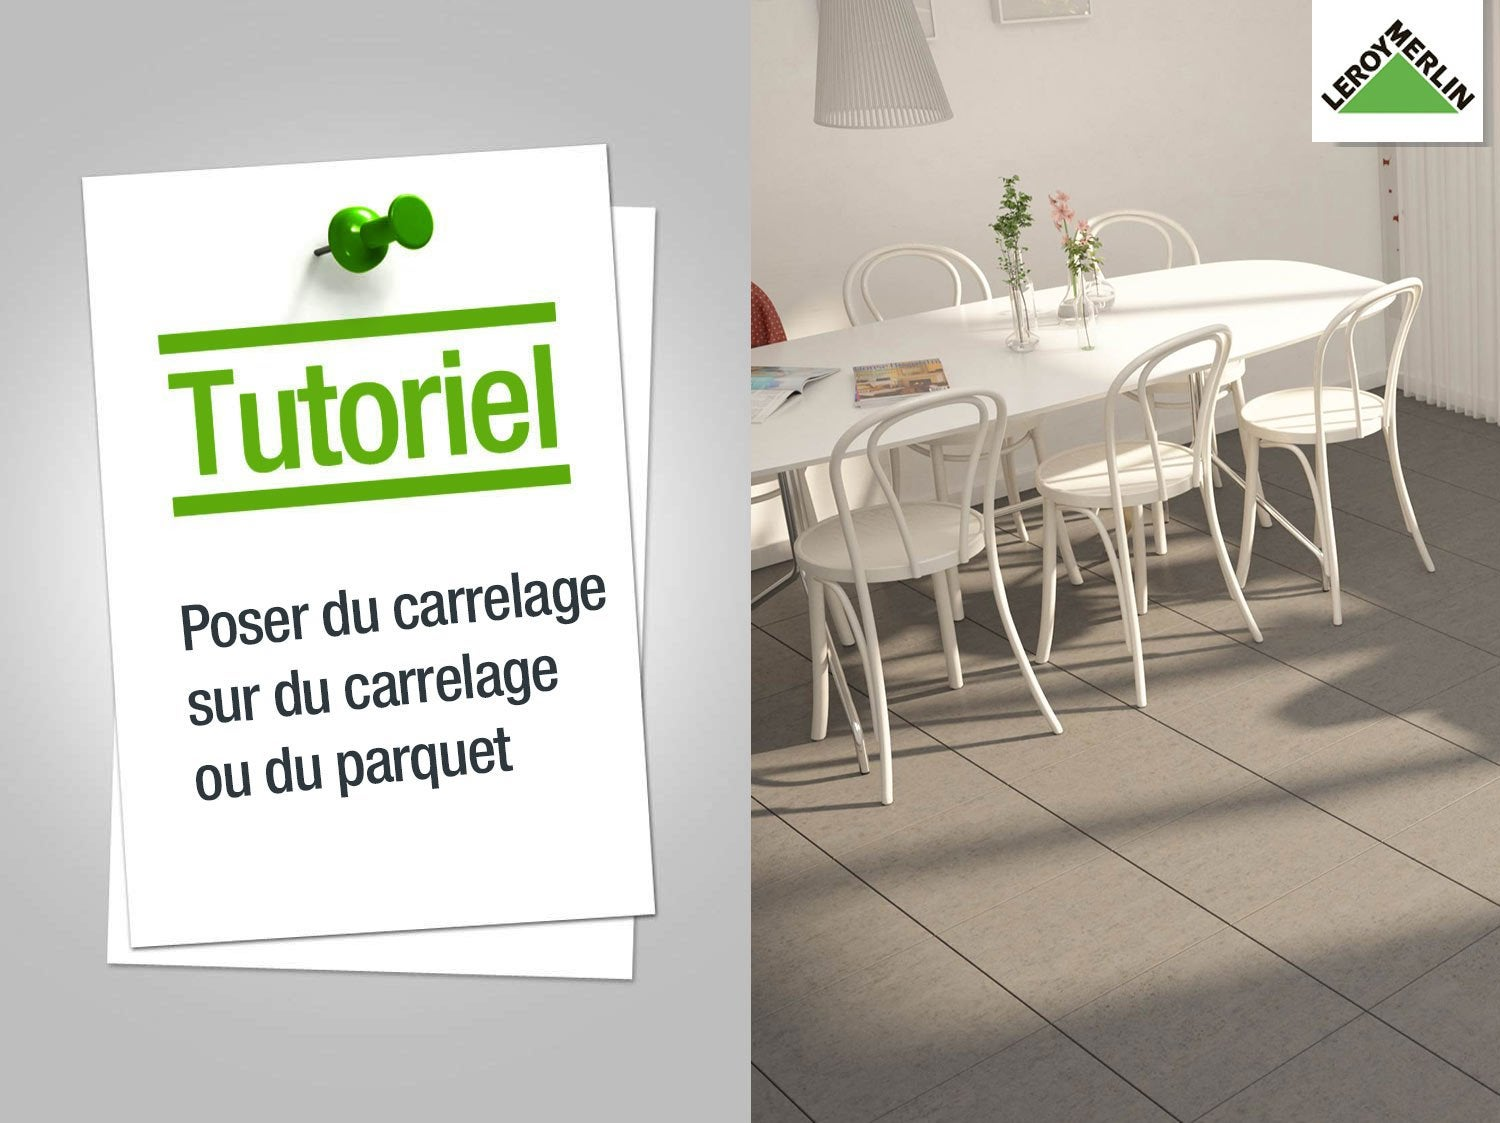 Tendance carrelage vannes beautiful tendance carrelage for Poser du parquet stratifie sur du carrelage